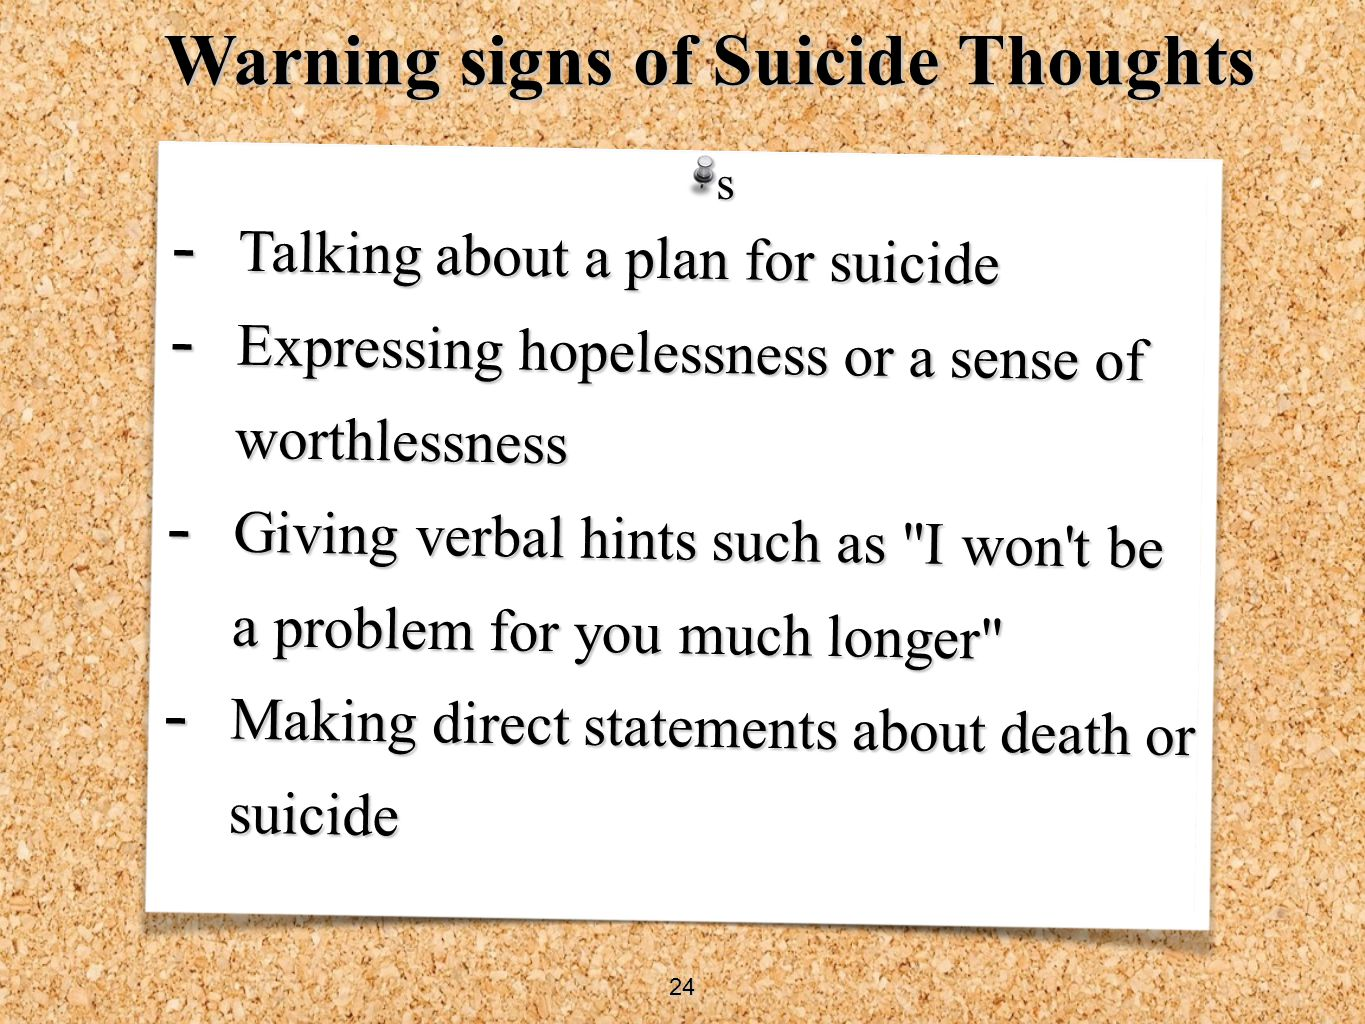 Warning signs of Suicide Thoughts